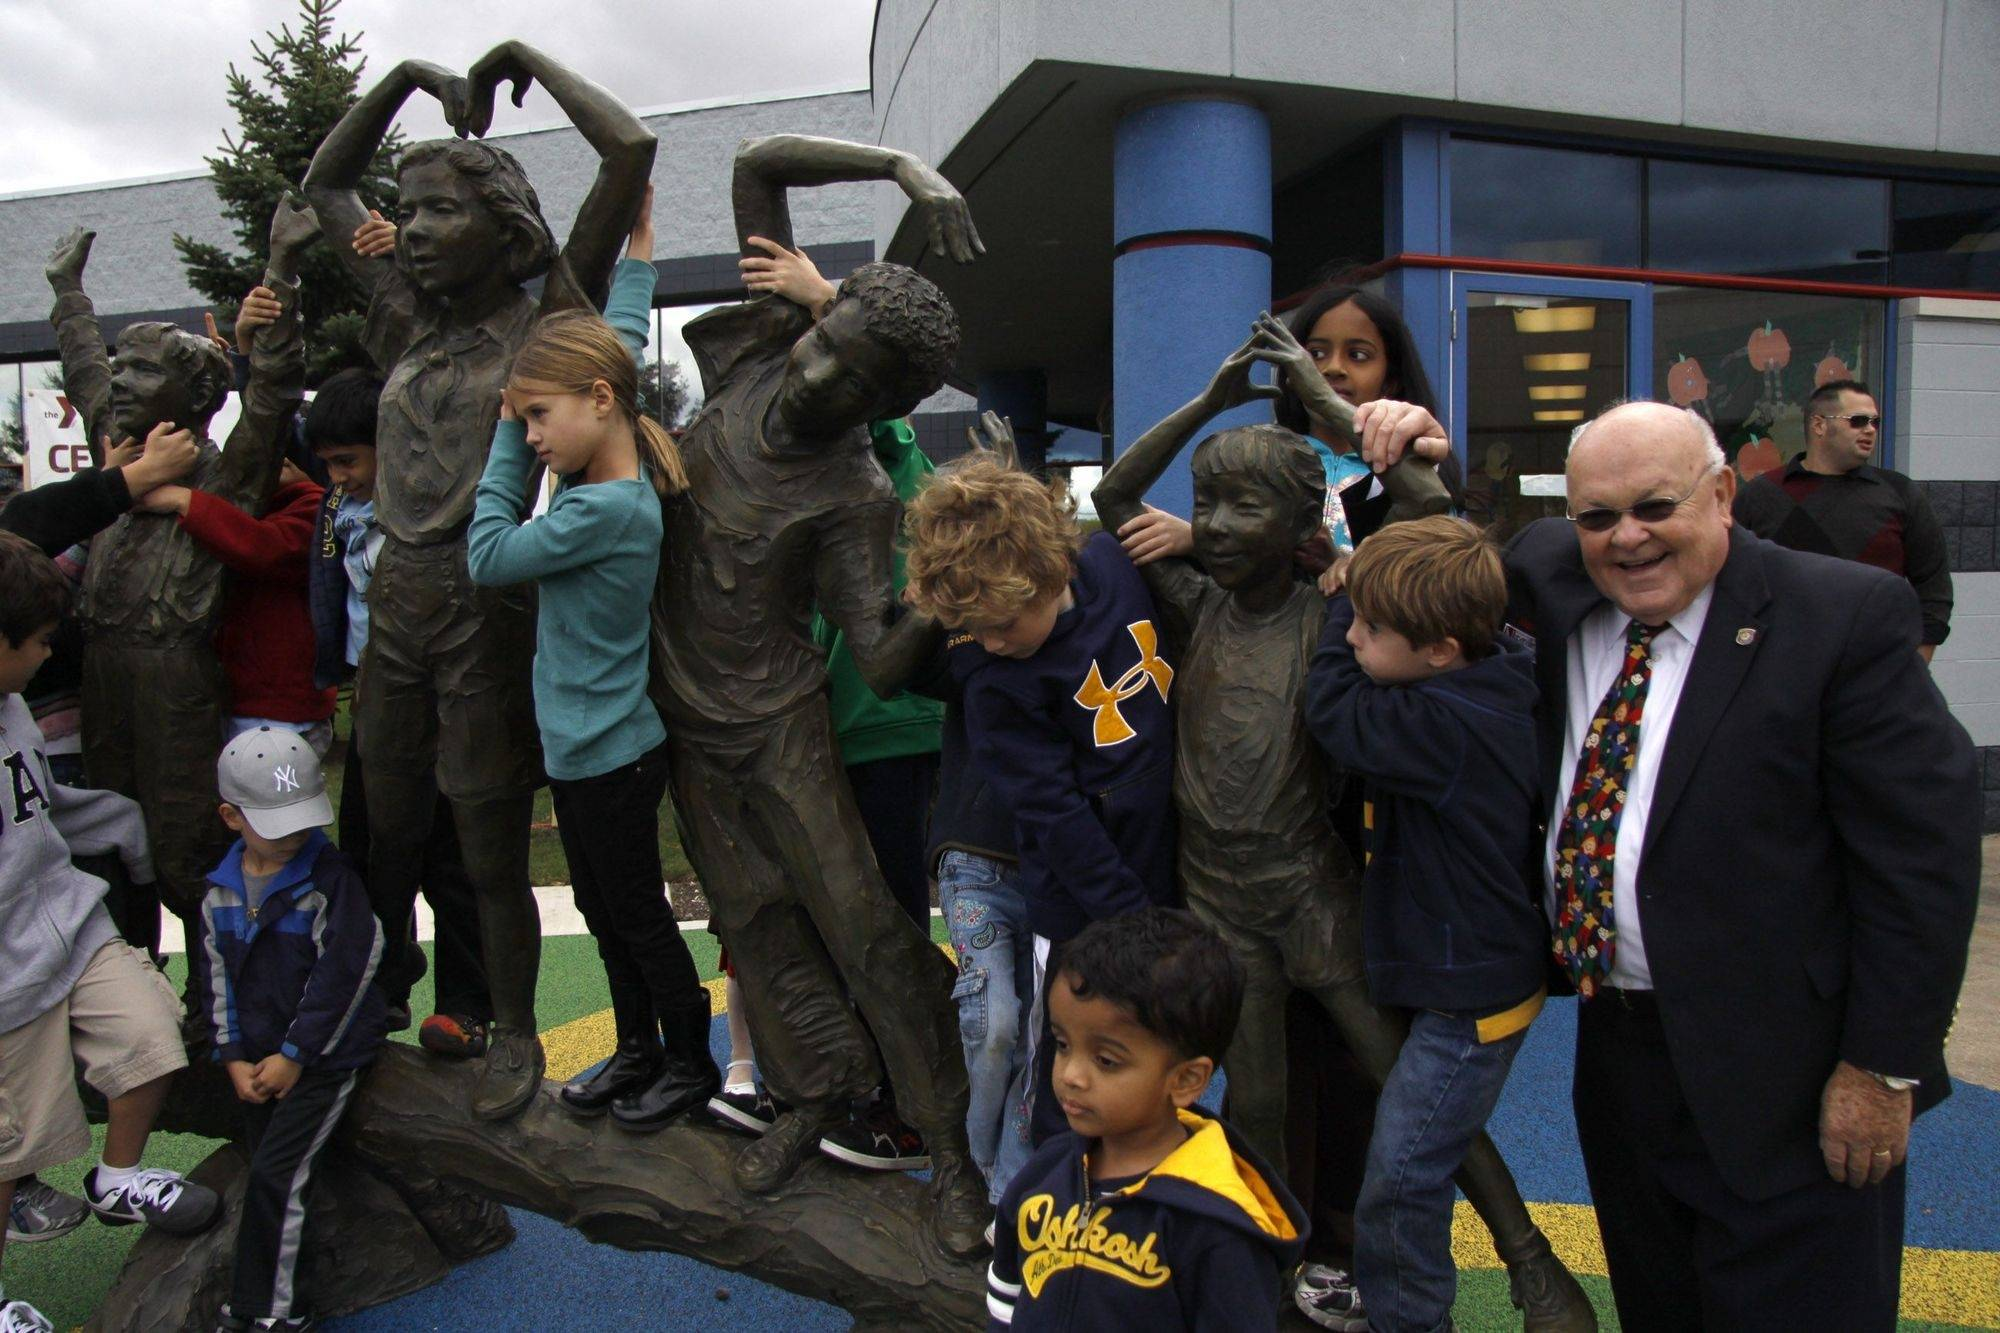 Even Naperville Mayor George Pradel couldn't refrain from grabbing onto the new interactive sculpture unveiled Sunday to celebrate Heritage YMCA's 100 years in the city.